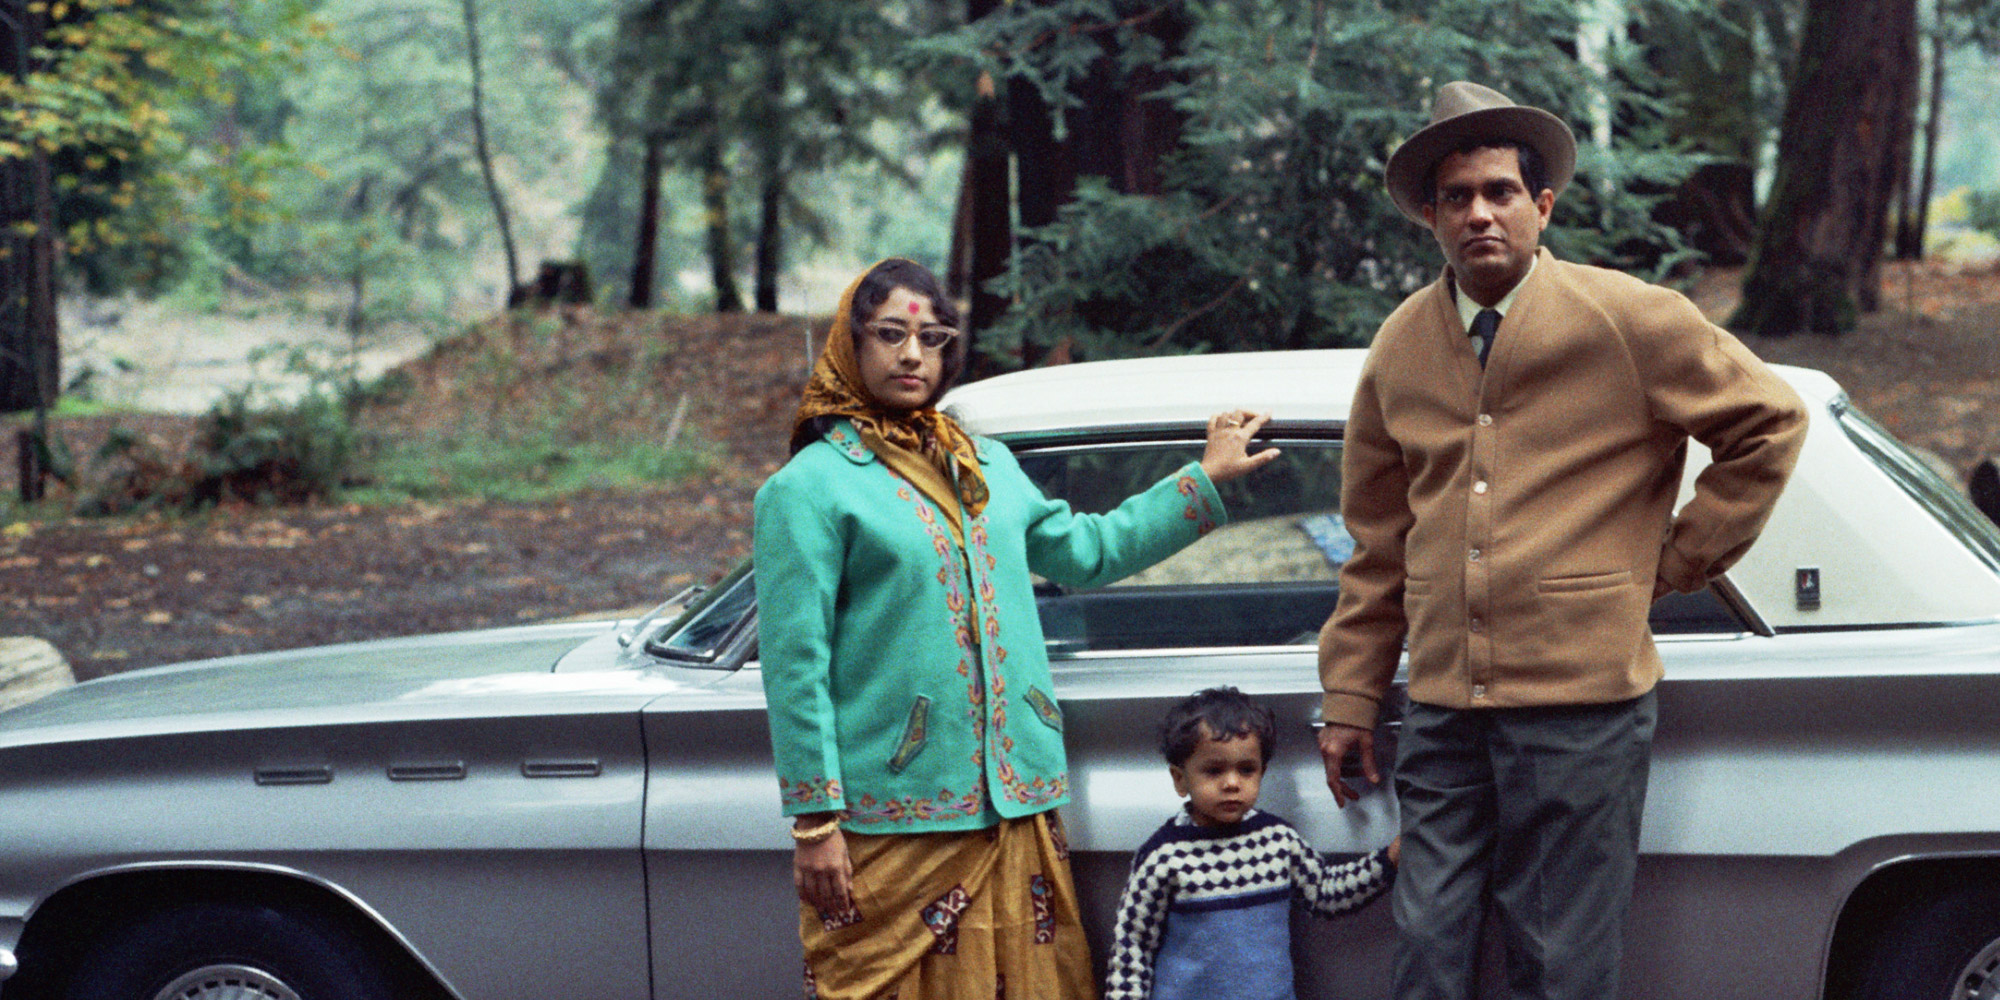 A photo from Beyond Bollywood: Indian Americans Shape the Nation